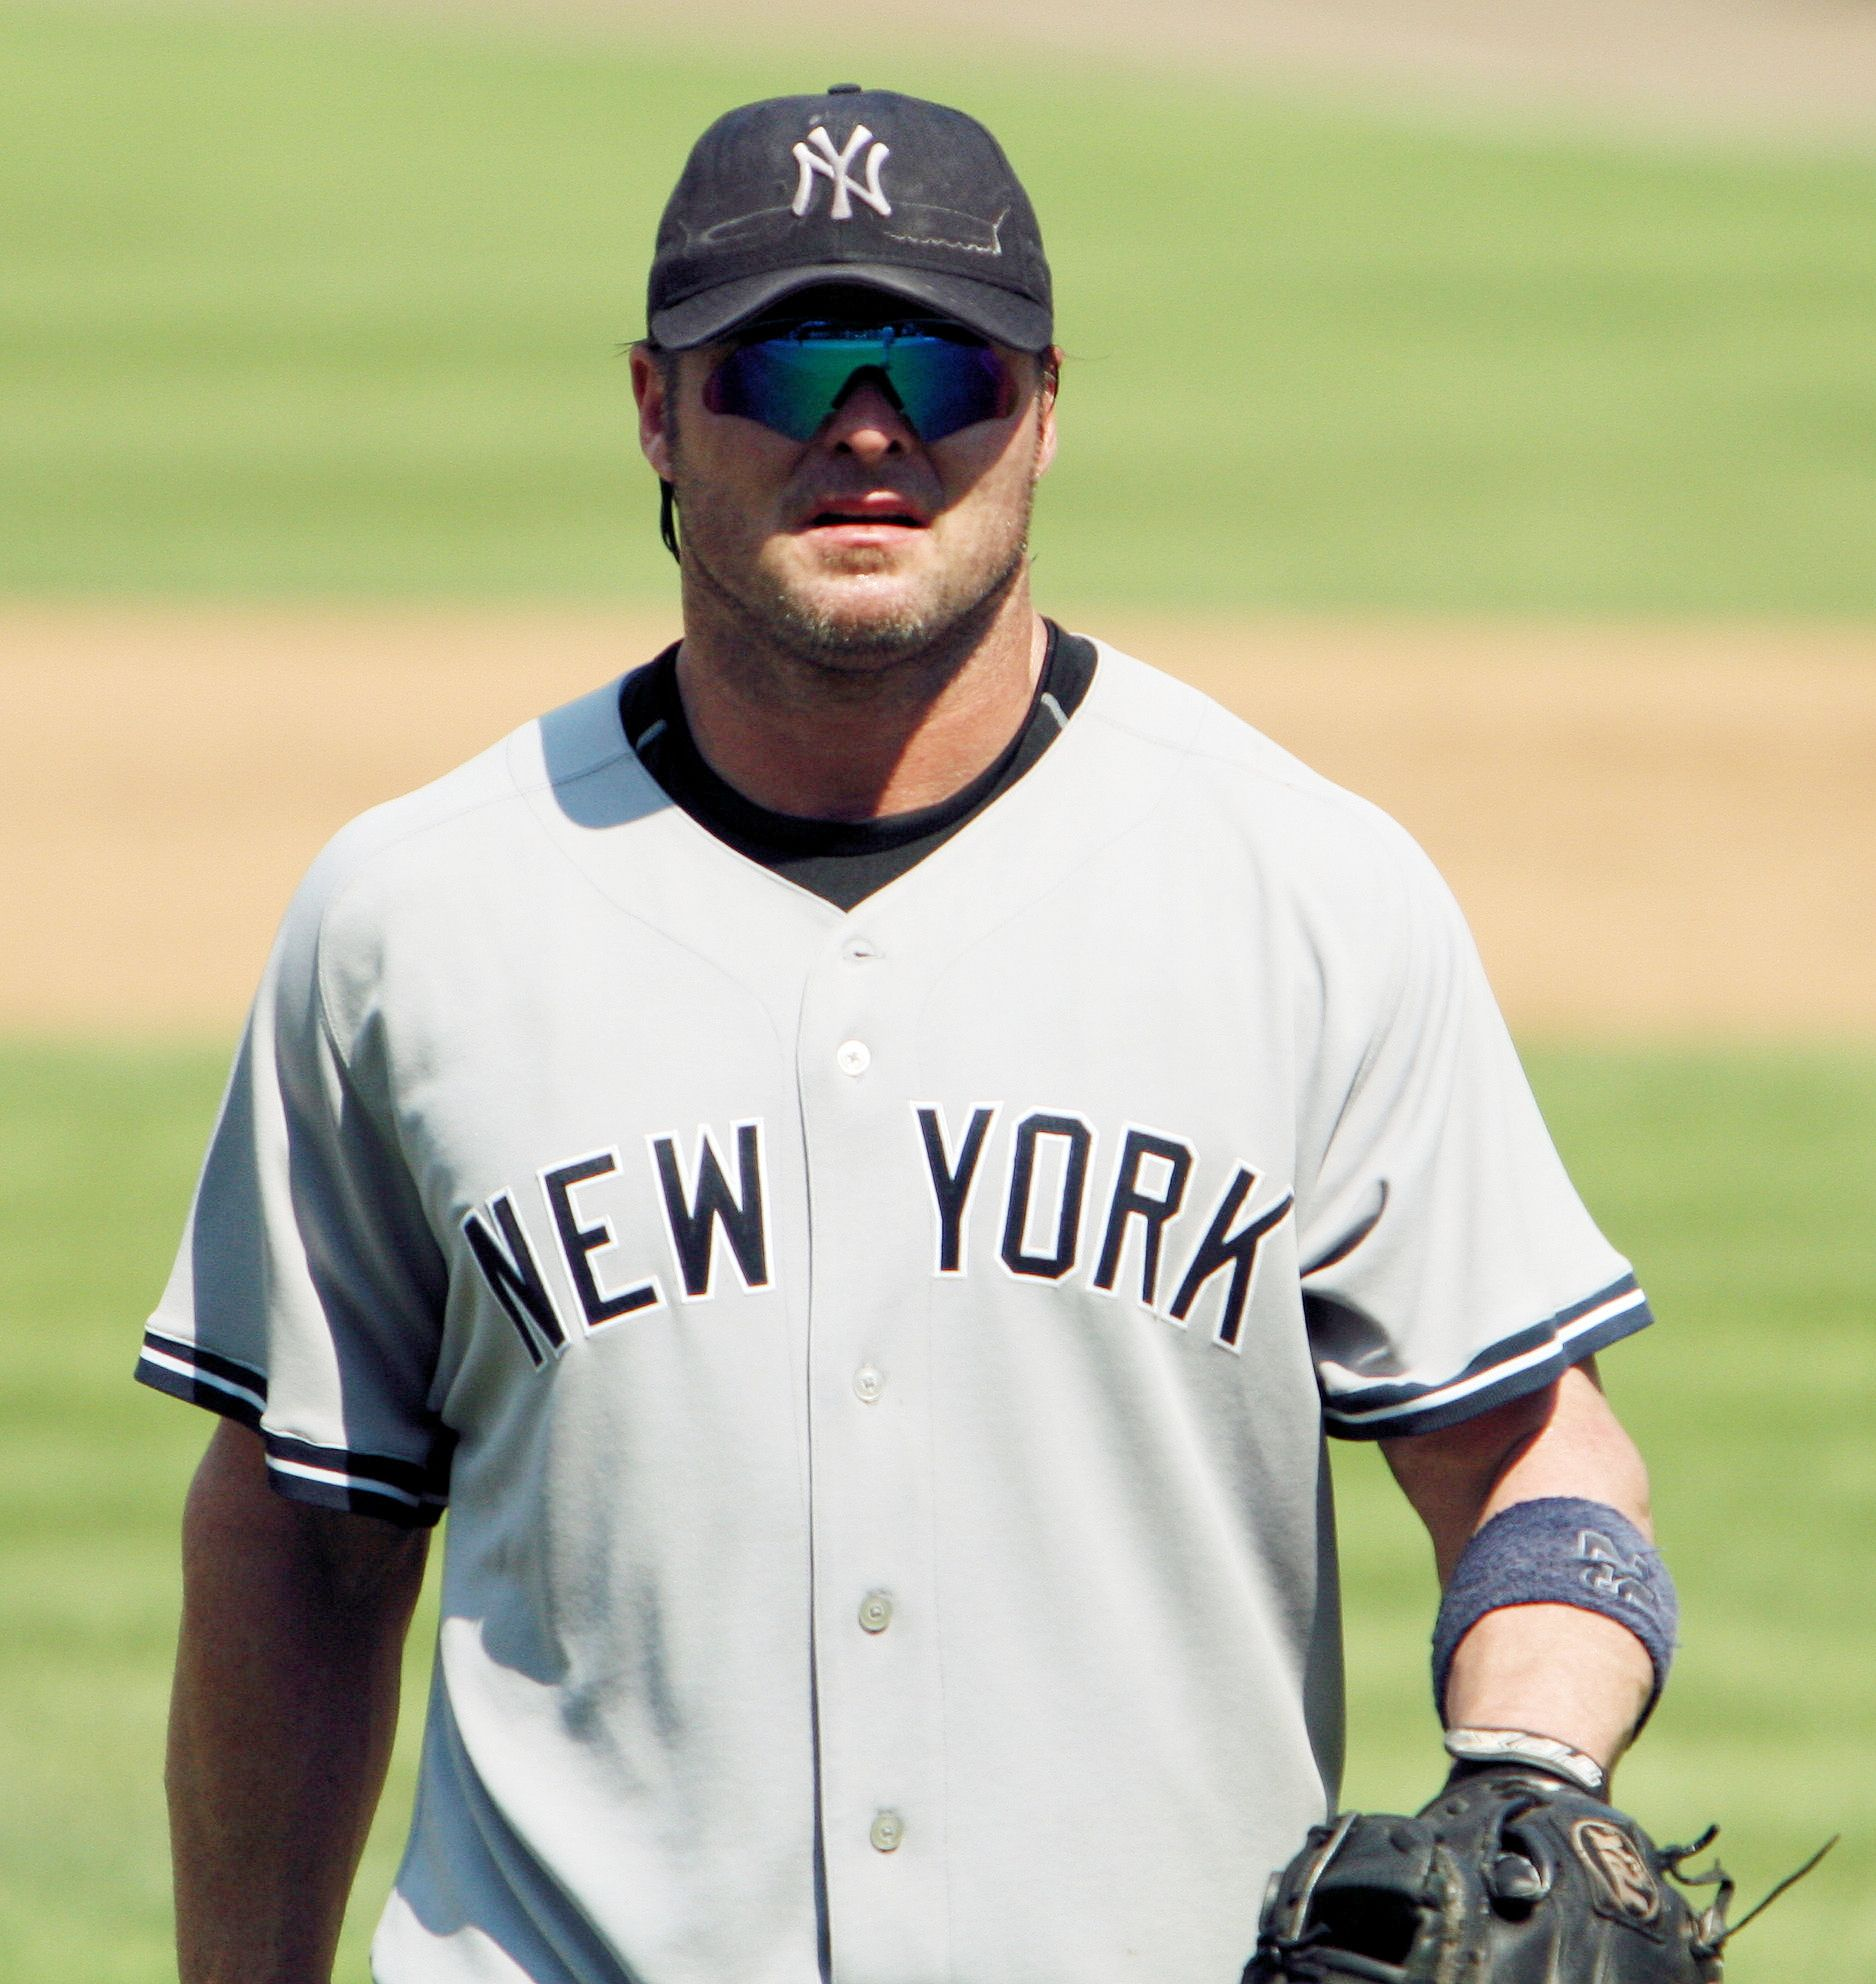 Ny Yankees Players File New York Yankees Player By Keith Allison Jpg Wikimedia Commons New York Yankees Yankees Go Yankees